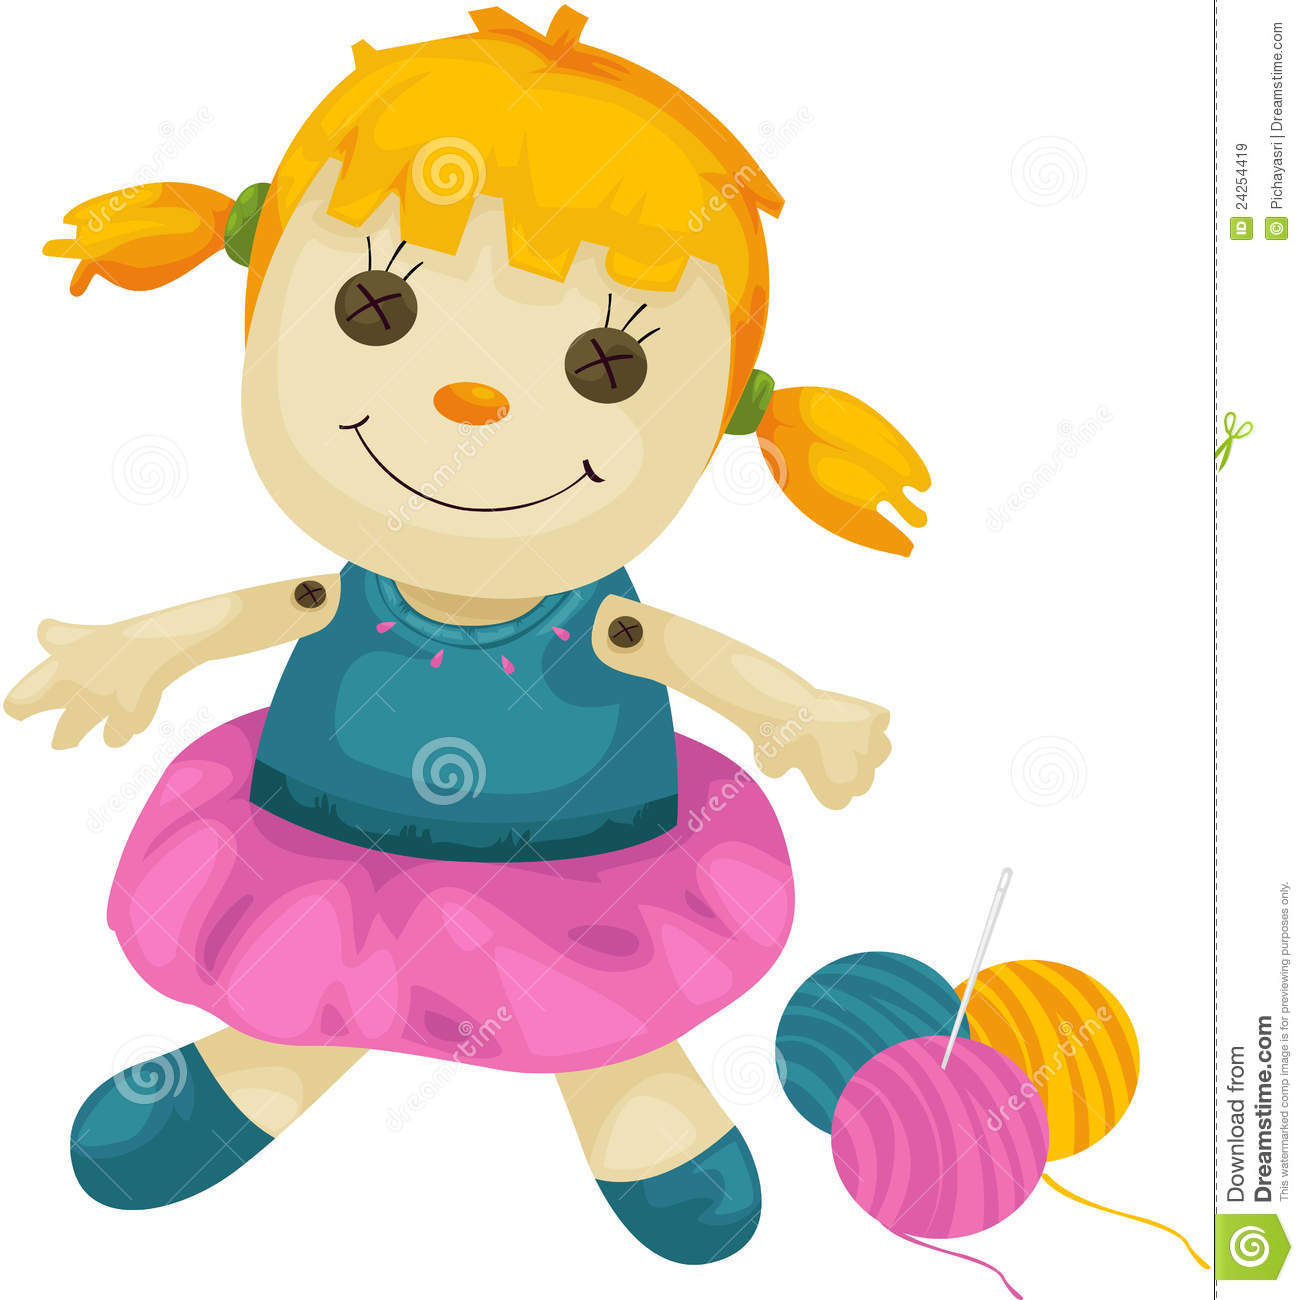 Baby Doll Clipart Fabric Doll With Yarns